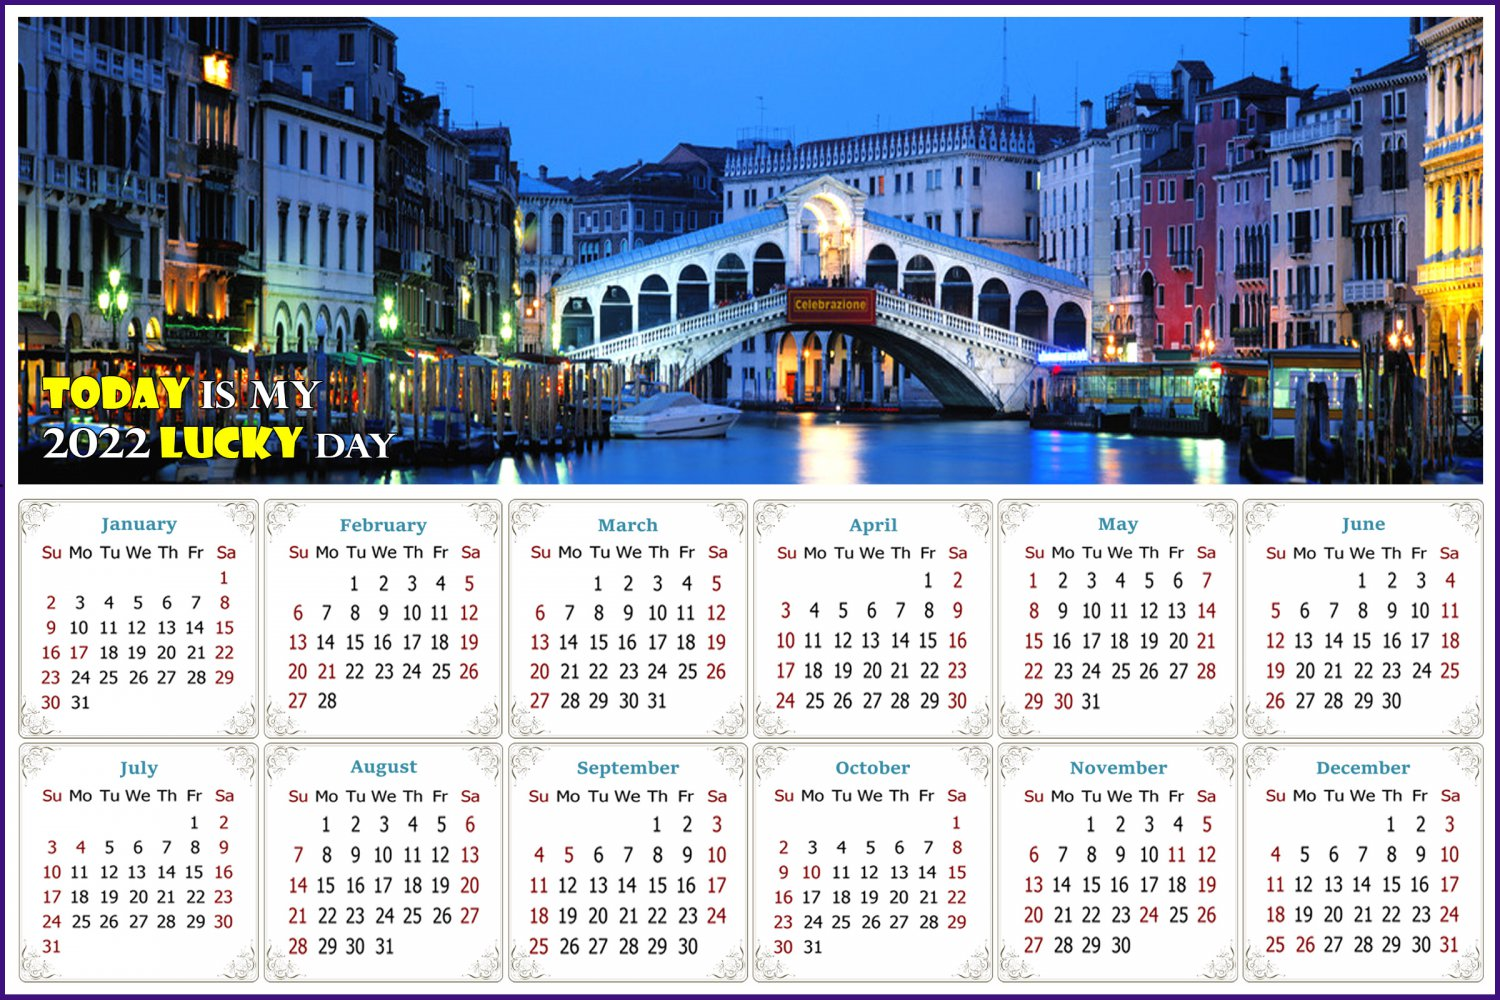 2022 Magnetic Calendar - Today is My Lucky Day - Nightlife on The Canal